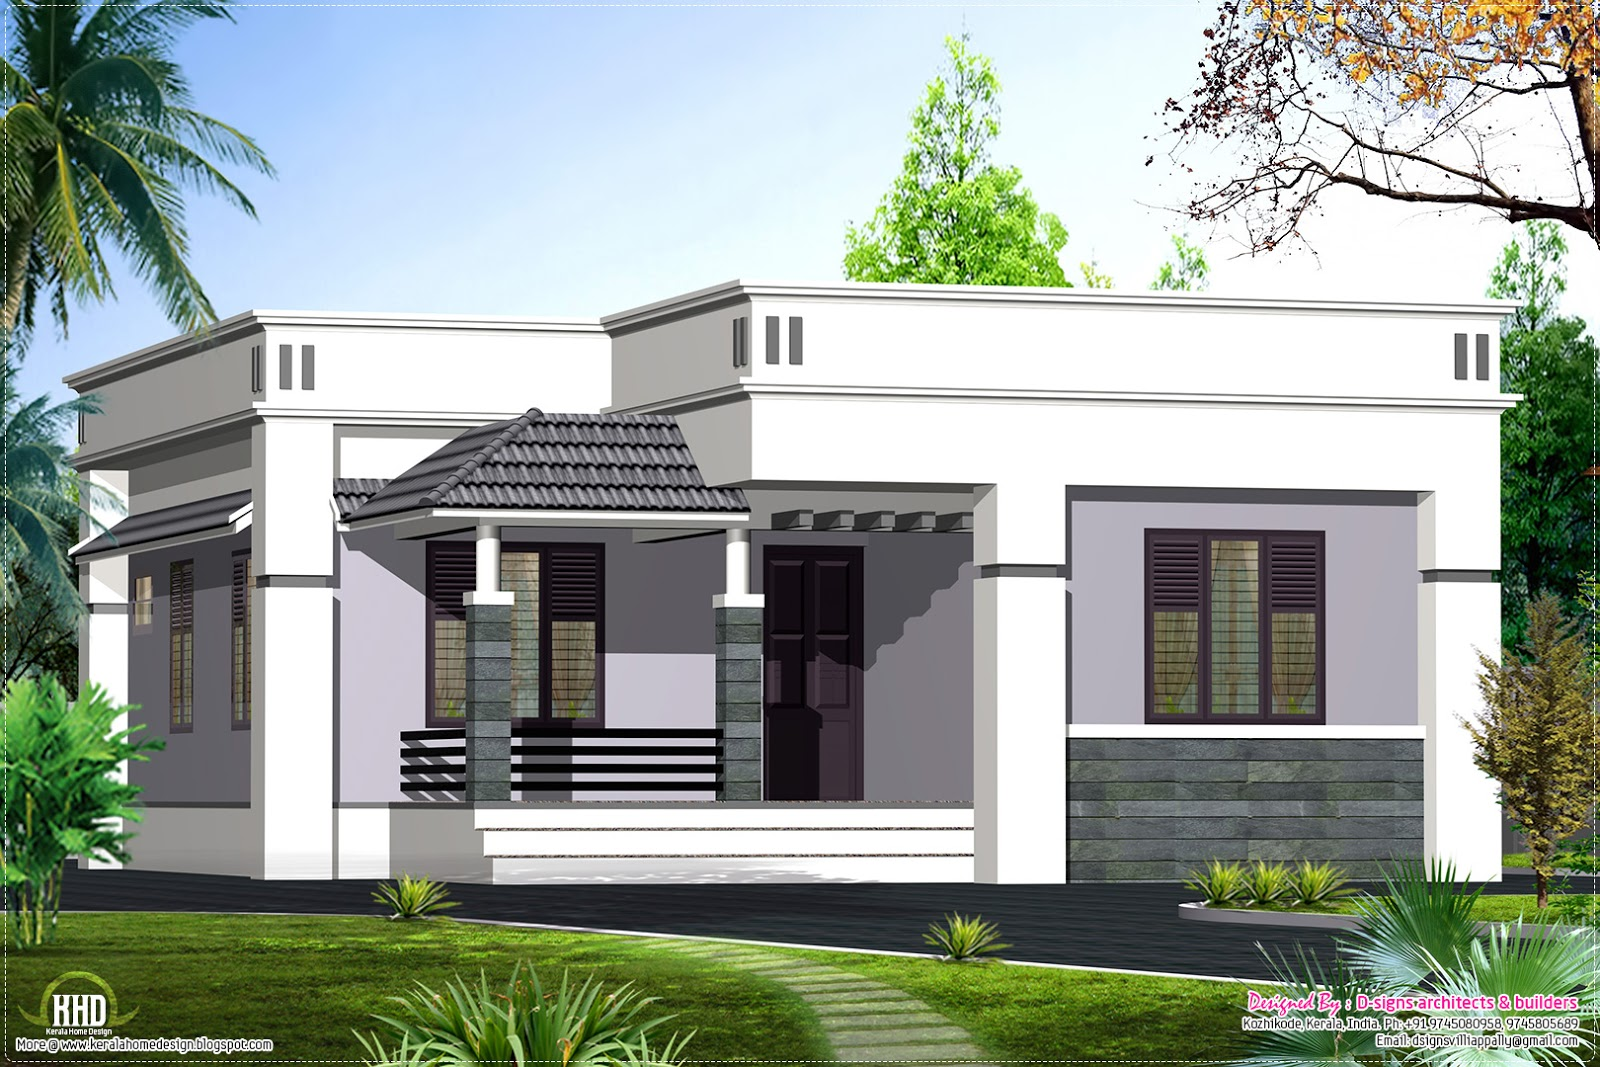 House Desings Custom 35 Small And Simple But Beautiful House With Roof Deck Inspiration Design